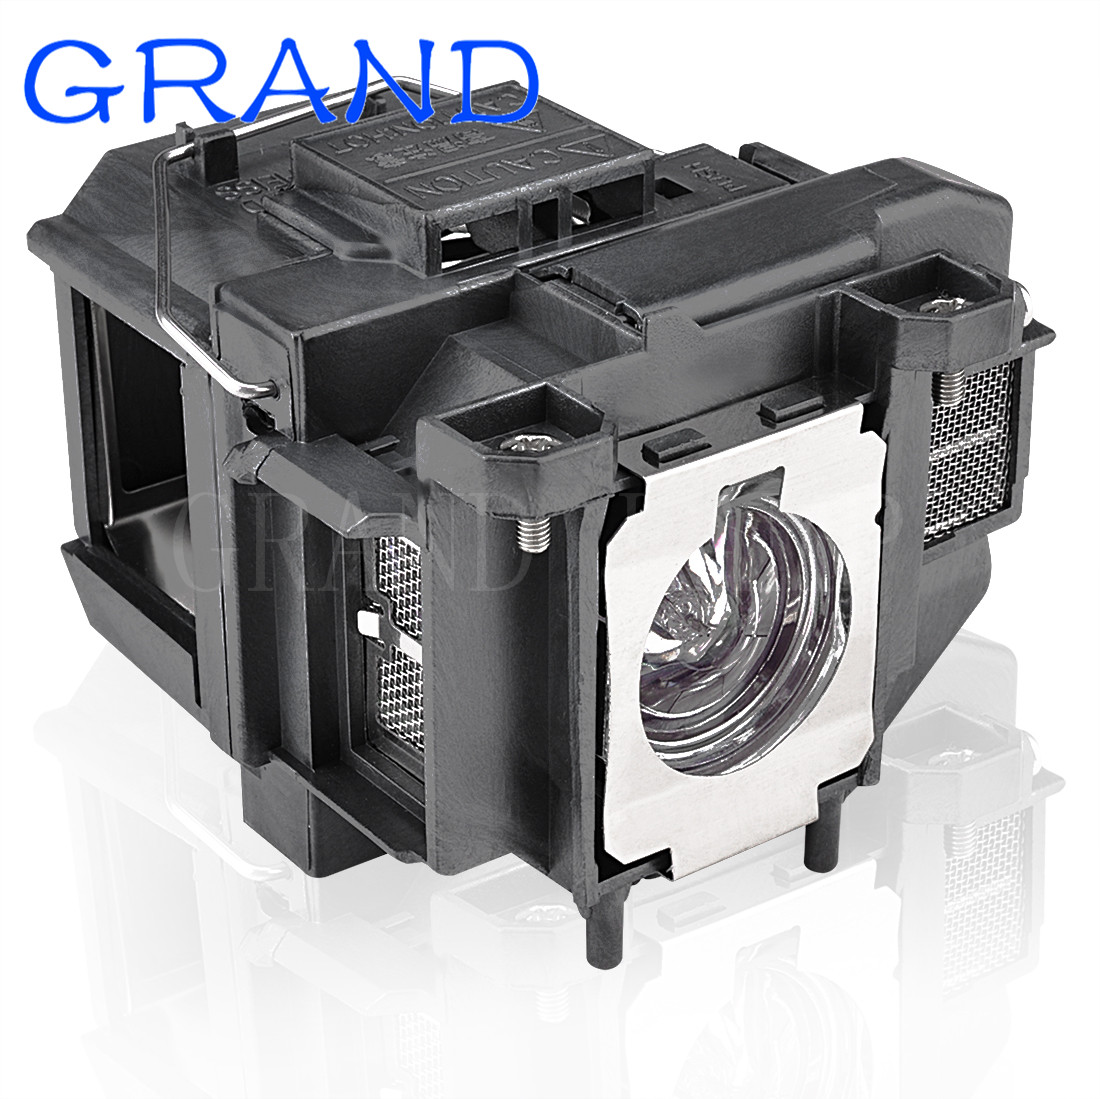 Compatible H428A H428B H428C H429A H429B H429C H430A H430B H430C H433B H435B 1261W Eh-tw480 Projector Lamp For Epson ELPL67